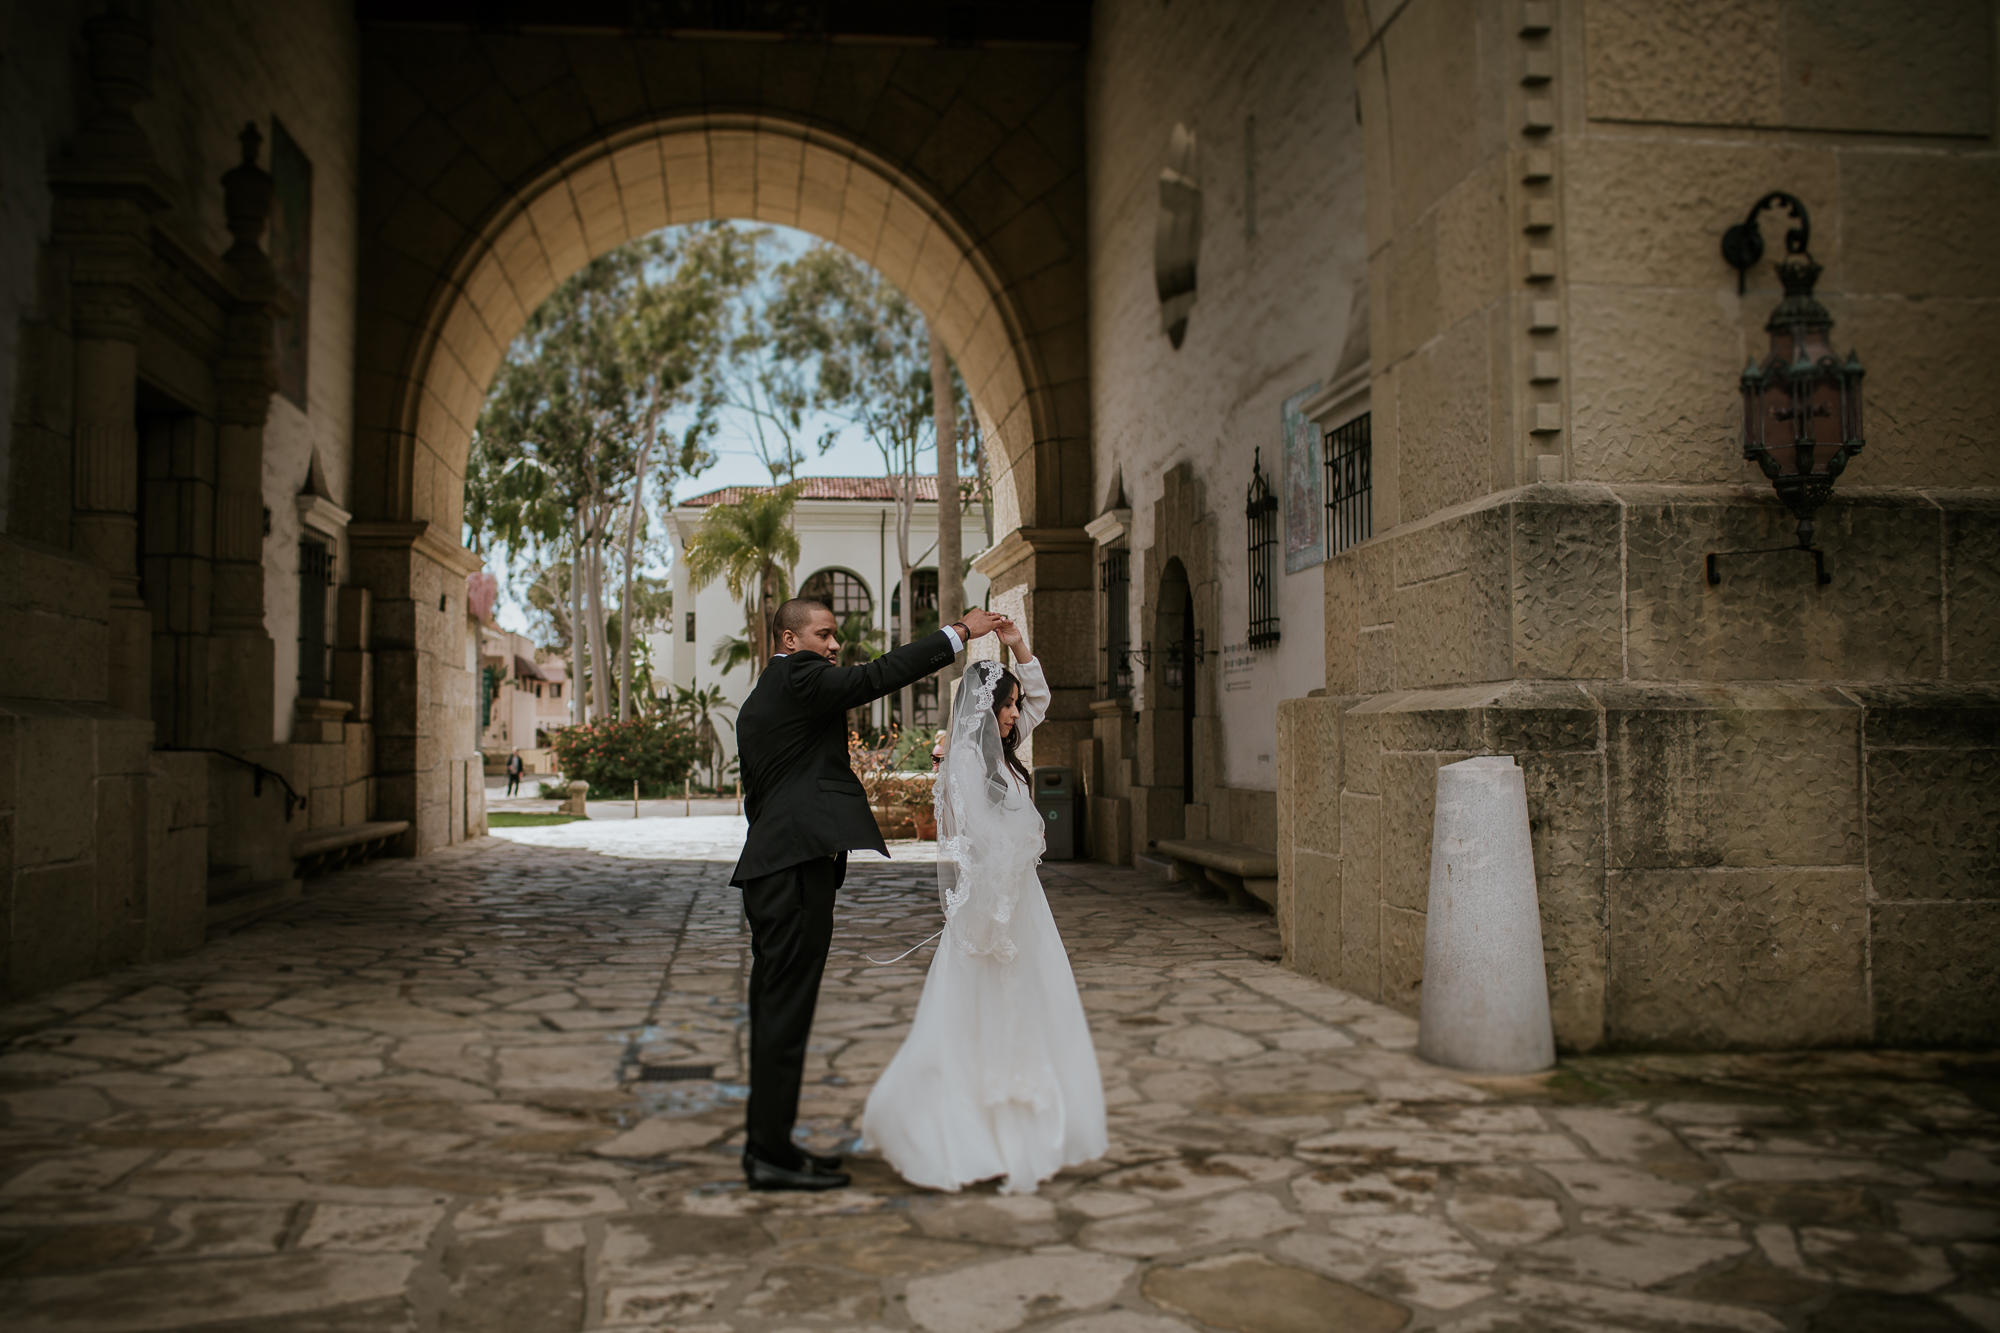 Gabriela and DeJuan santa barbara courthouse wedding stella mares wedding elopement  -27.jpg